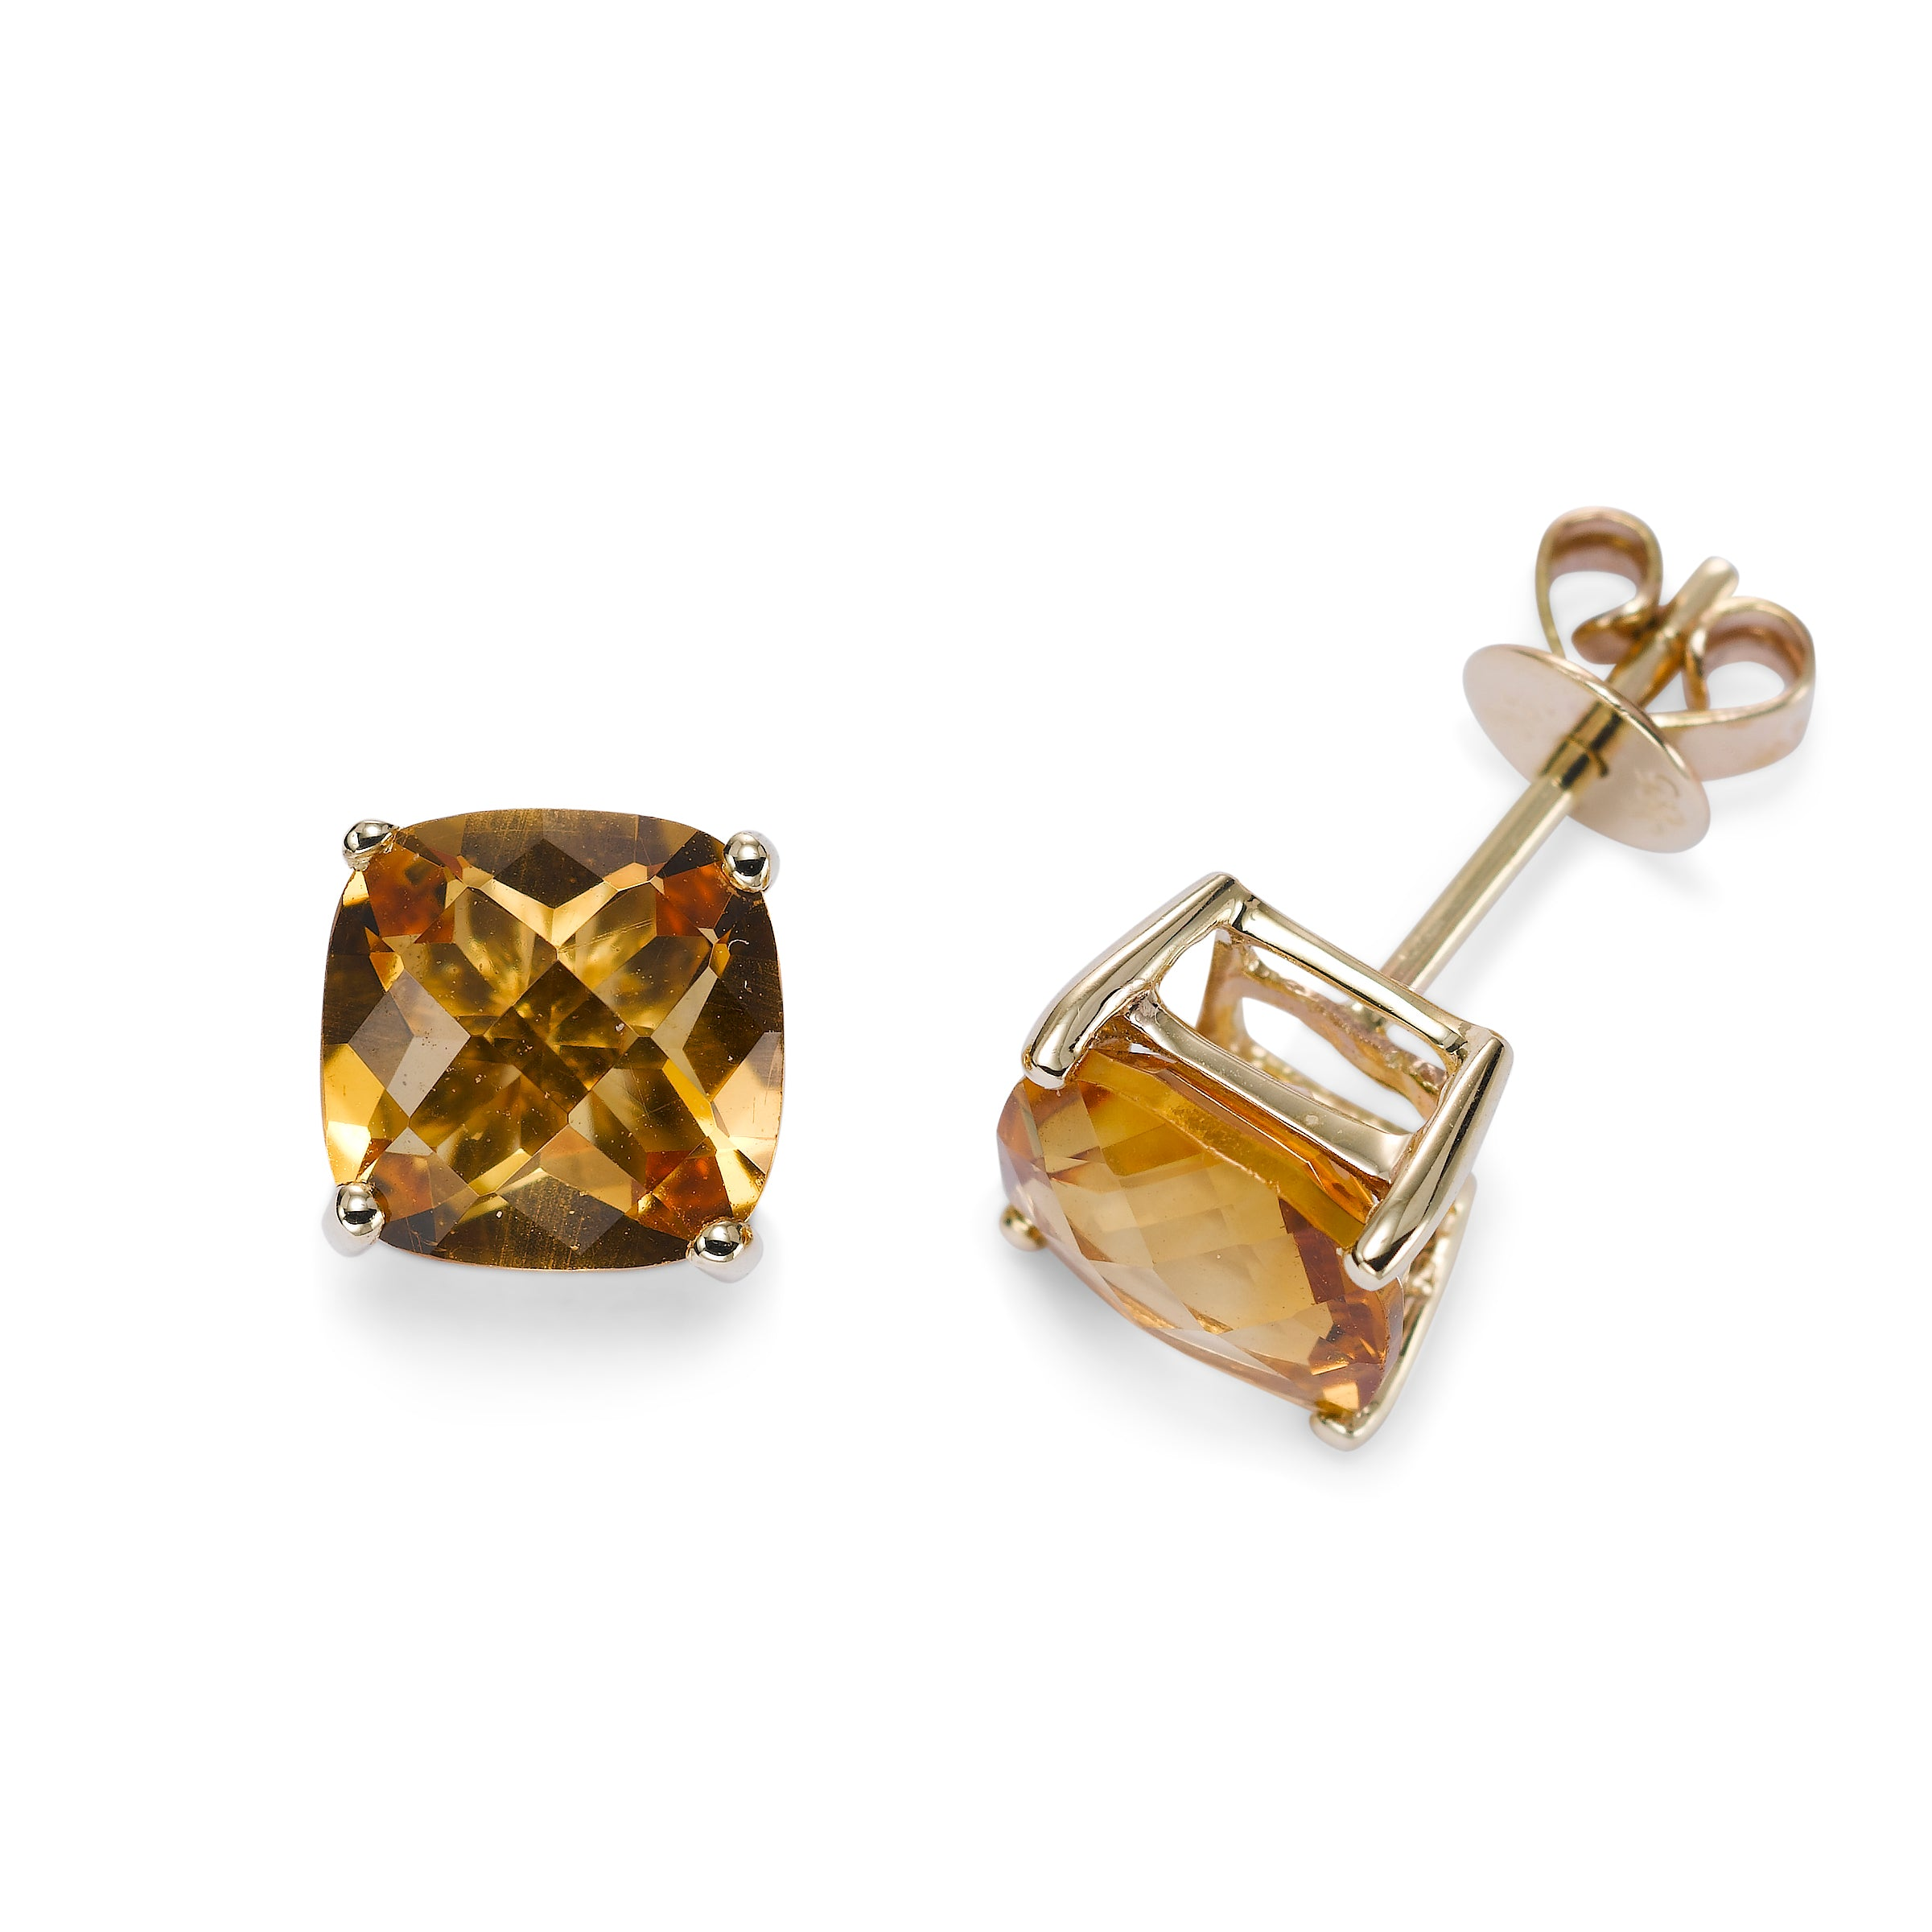 Cushion Cut Citrine Stud Earrings, 14K Yellow Gold